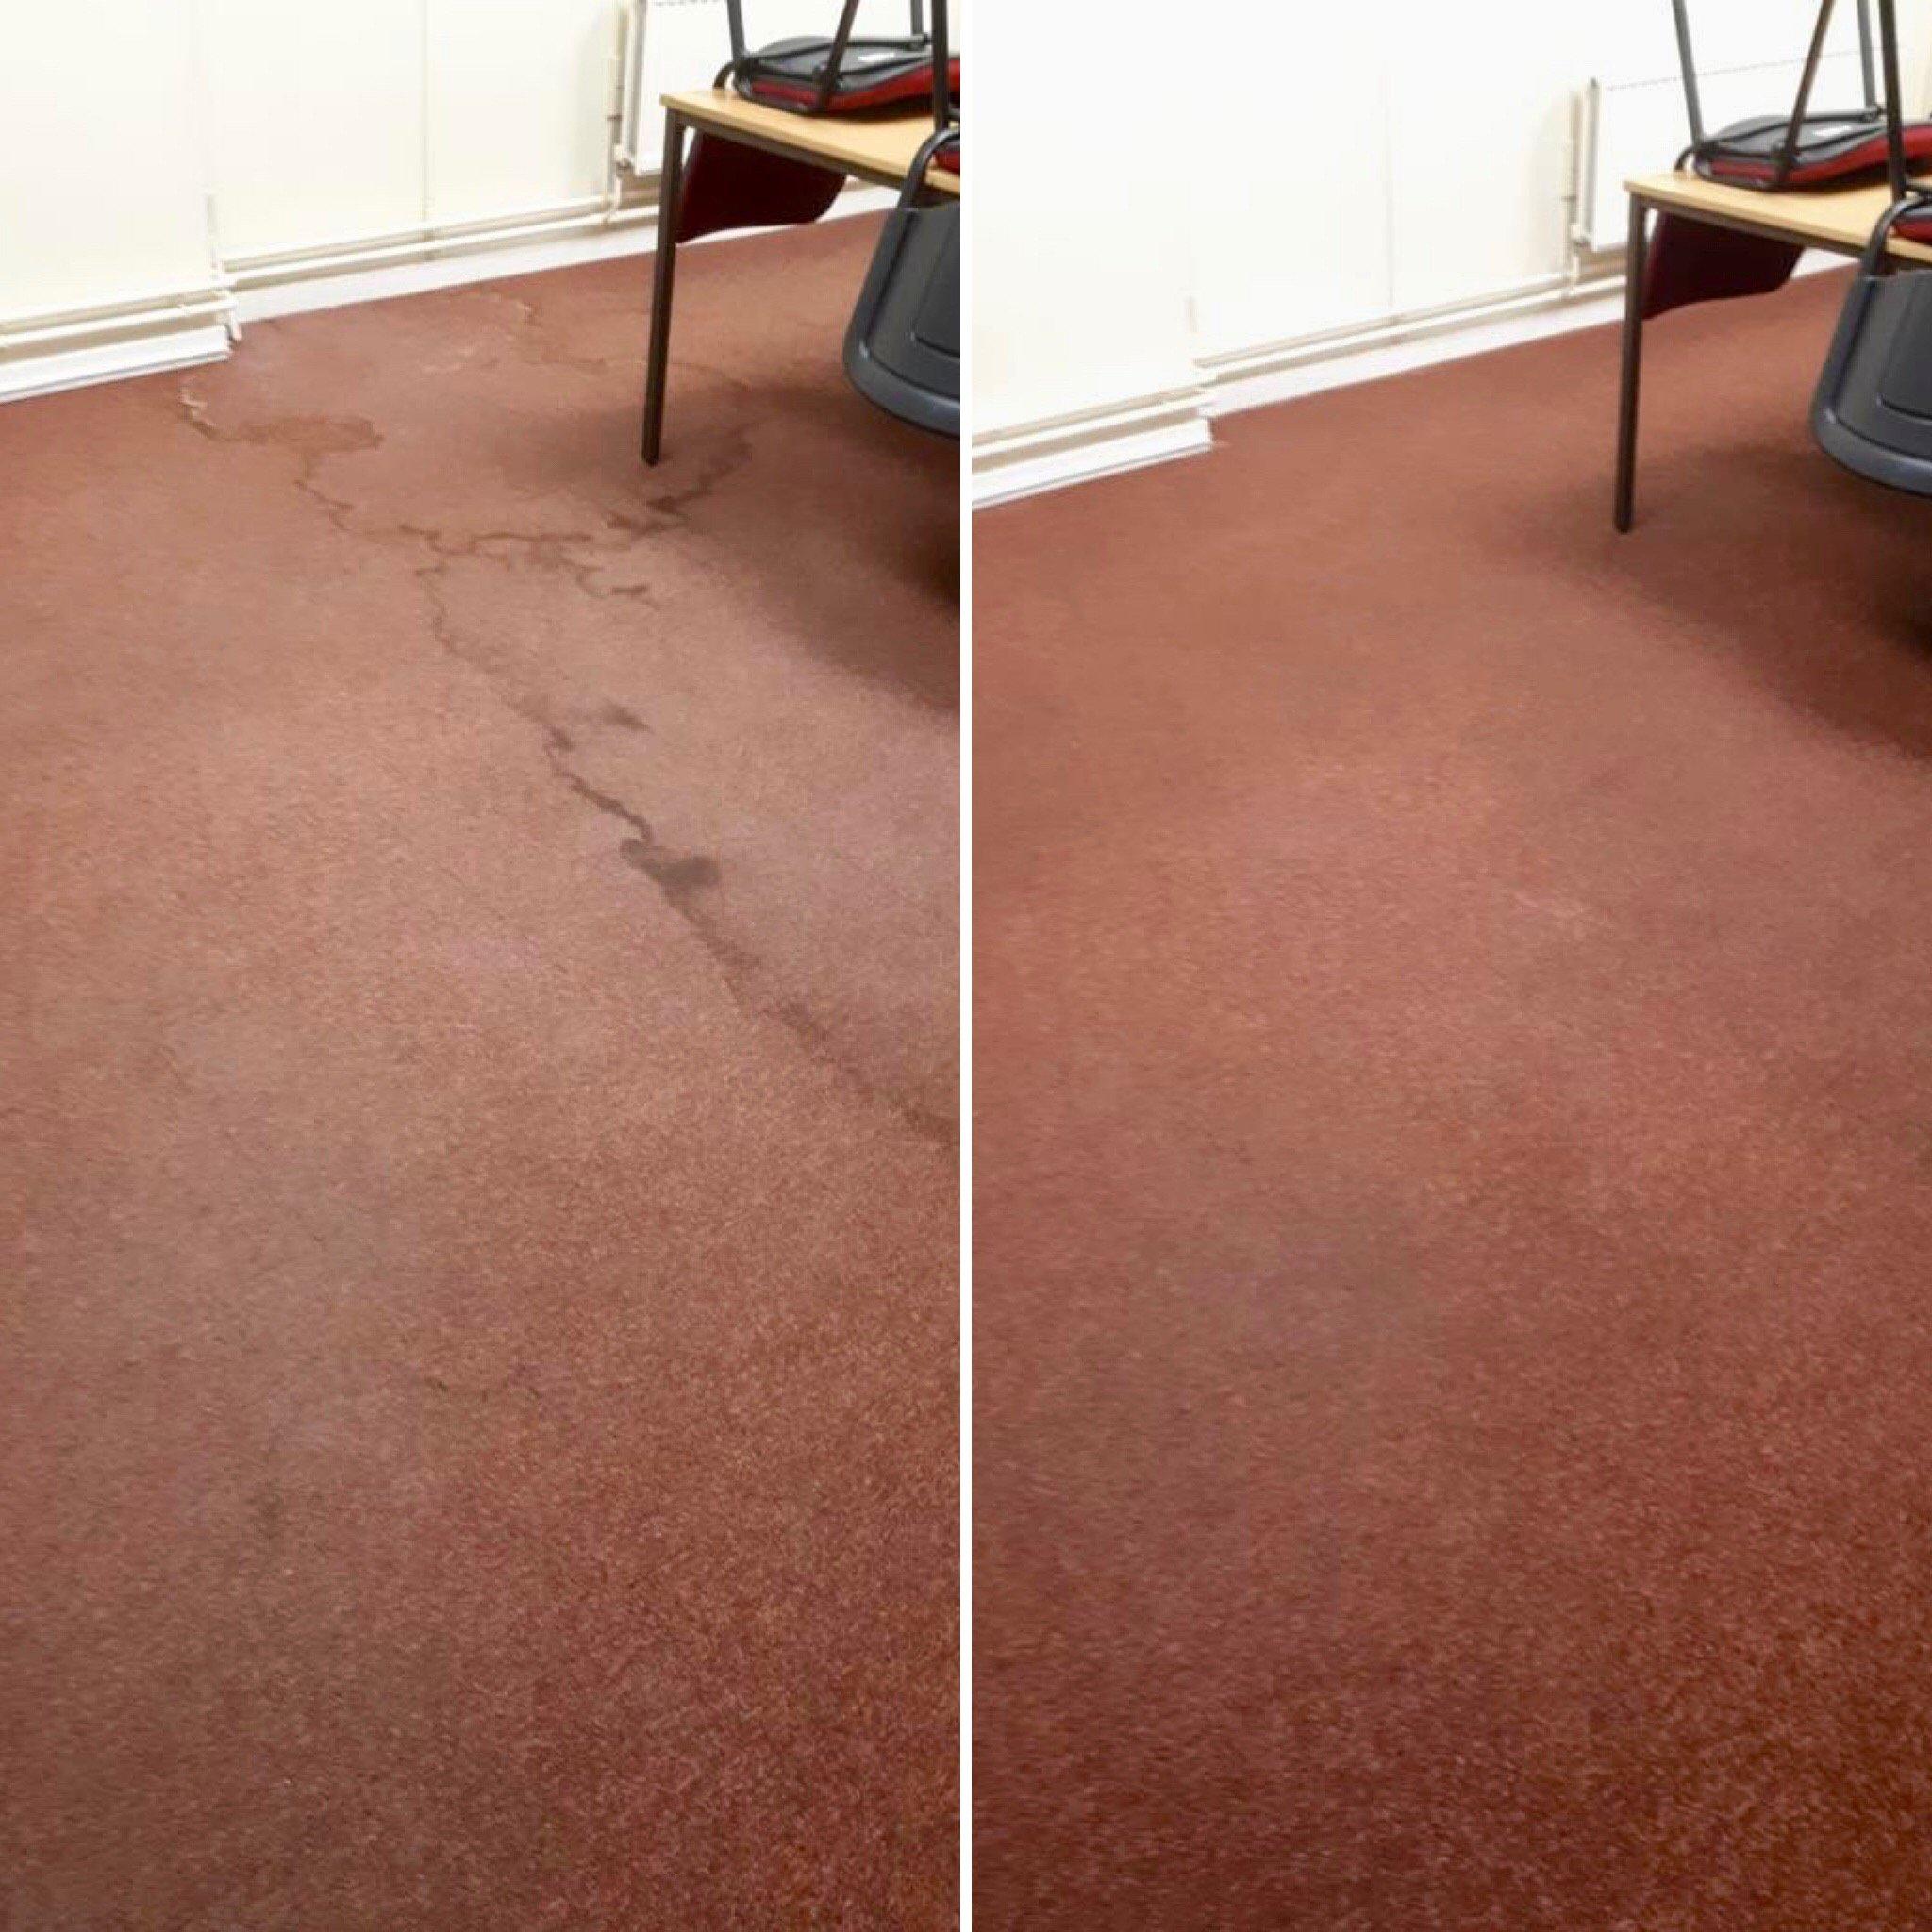 Carpet cleaning services that comply to Health and Safety regulations